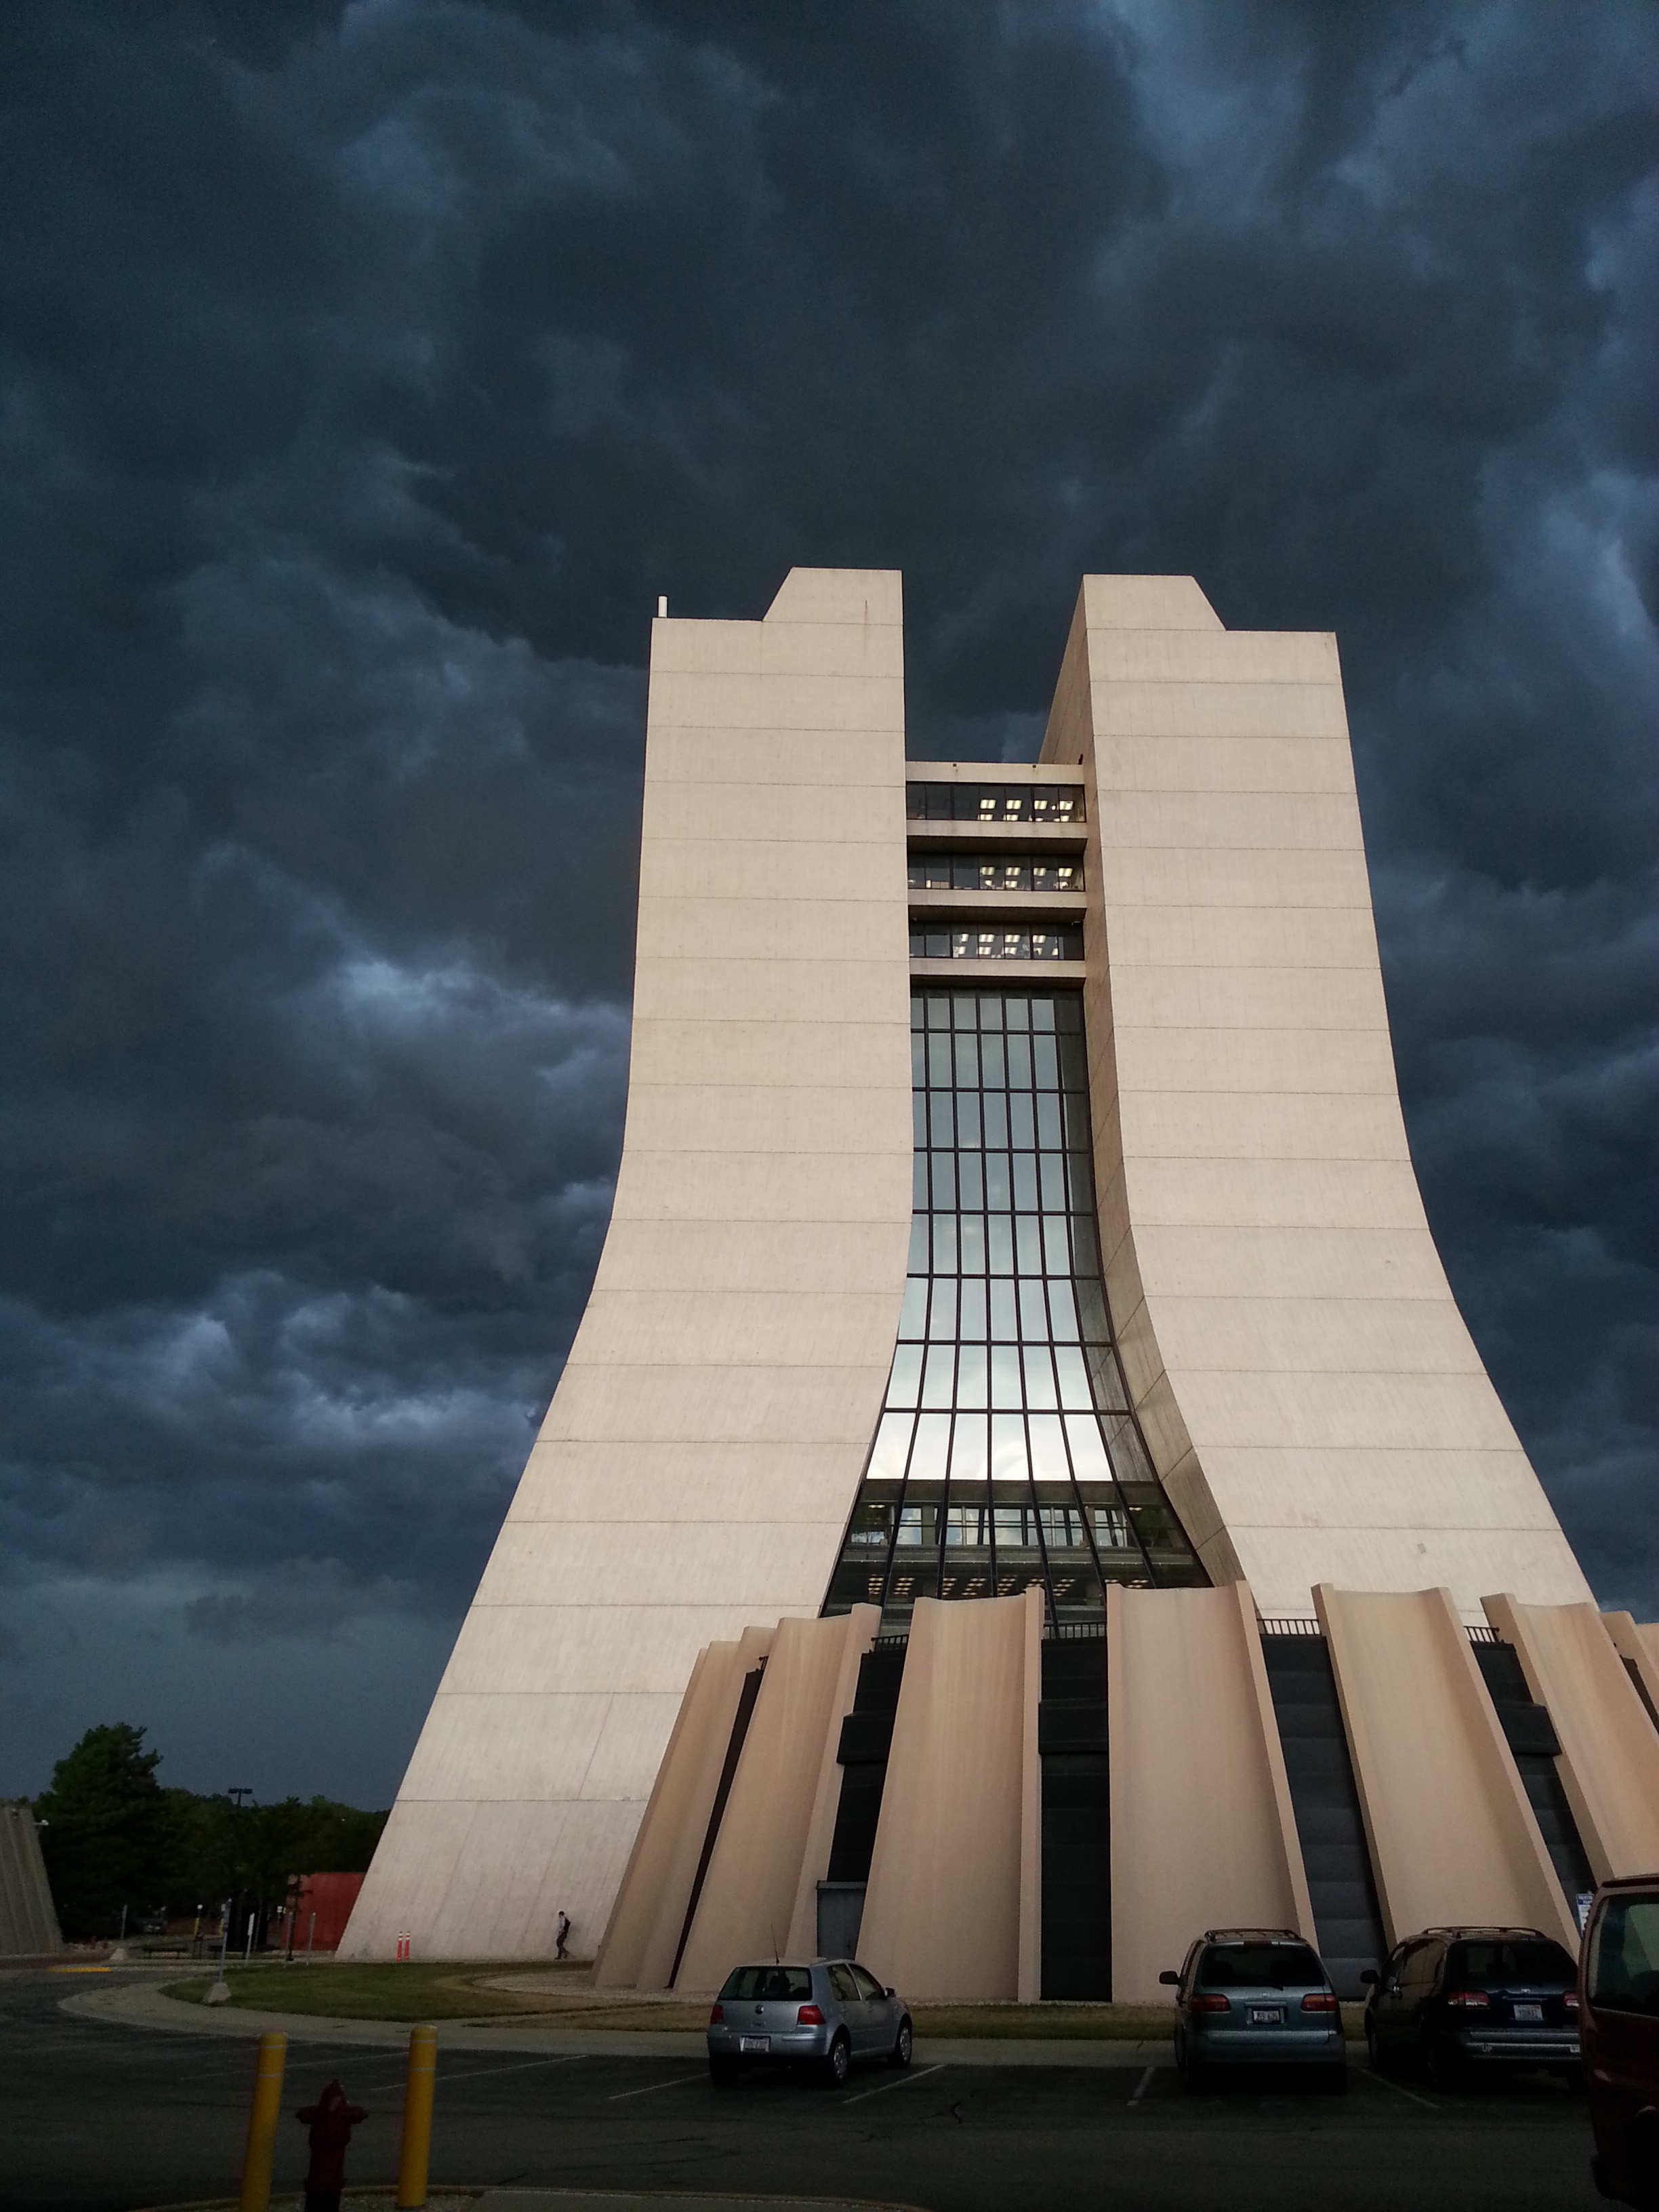 Tenebrous clouds passed over Wilson Hall as a storm rolled in on Friday. Photo: John Kuharik, AD